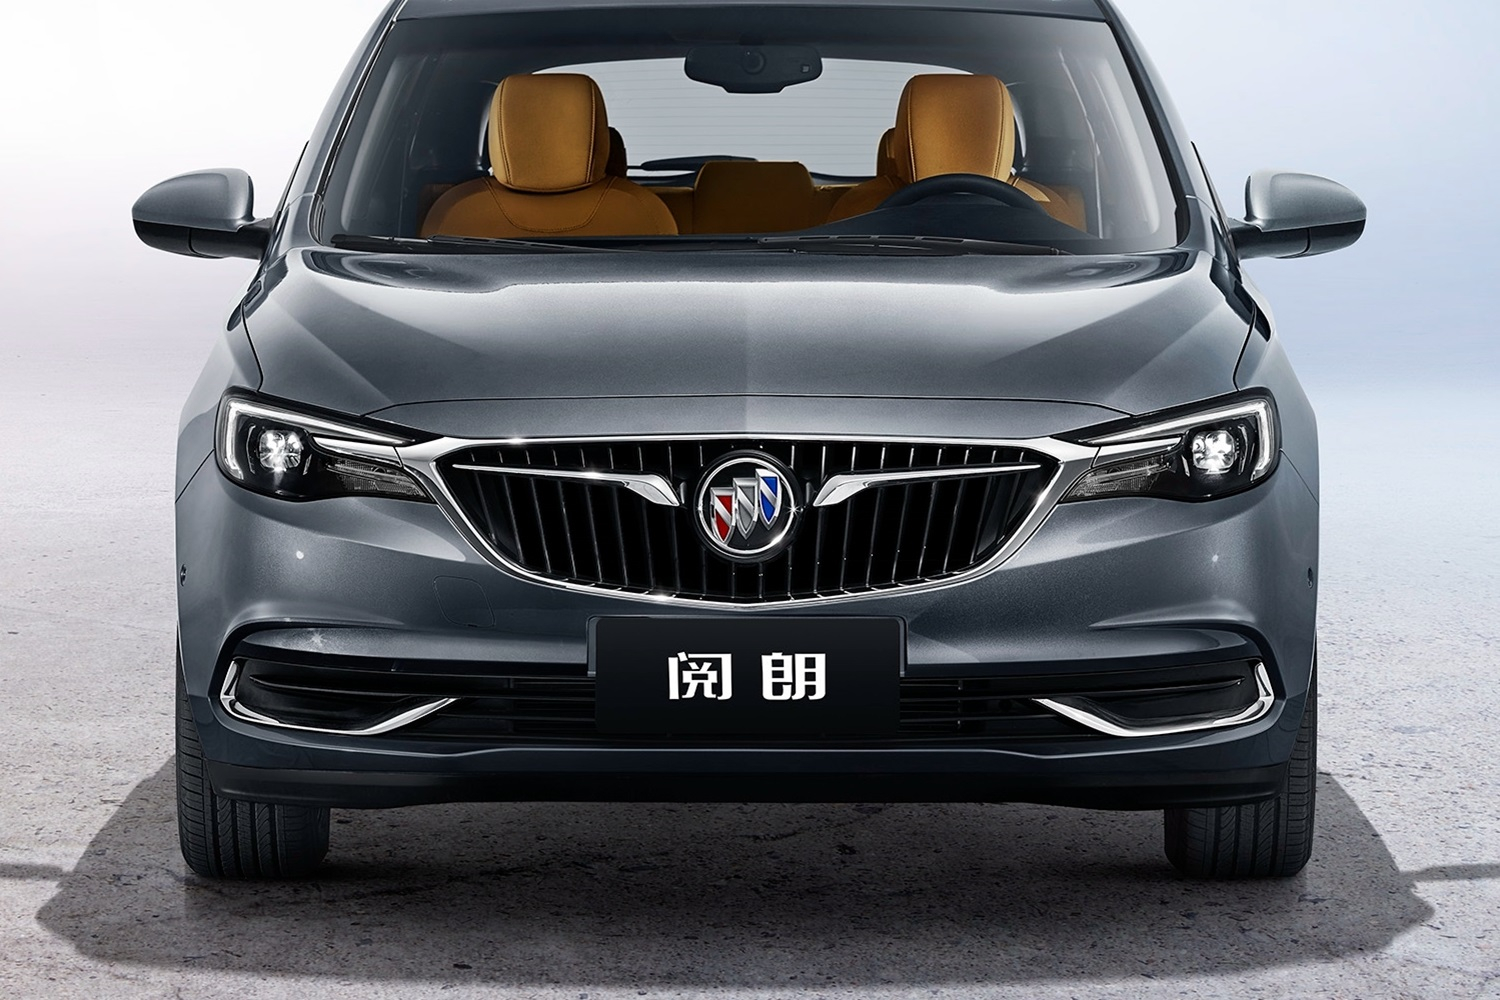 Buick Completes Update Of Sedan Portfolio In China | Gm New 2021 Buick Verano Trim Levels, Performance Parts, Cost